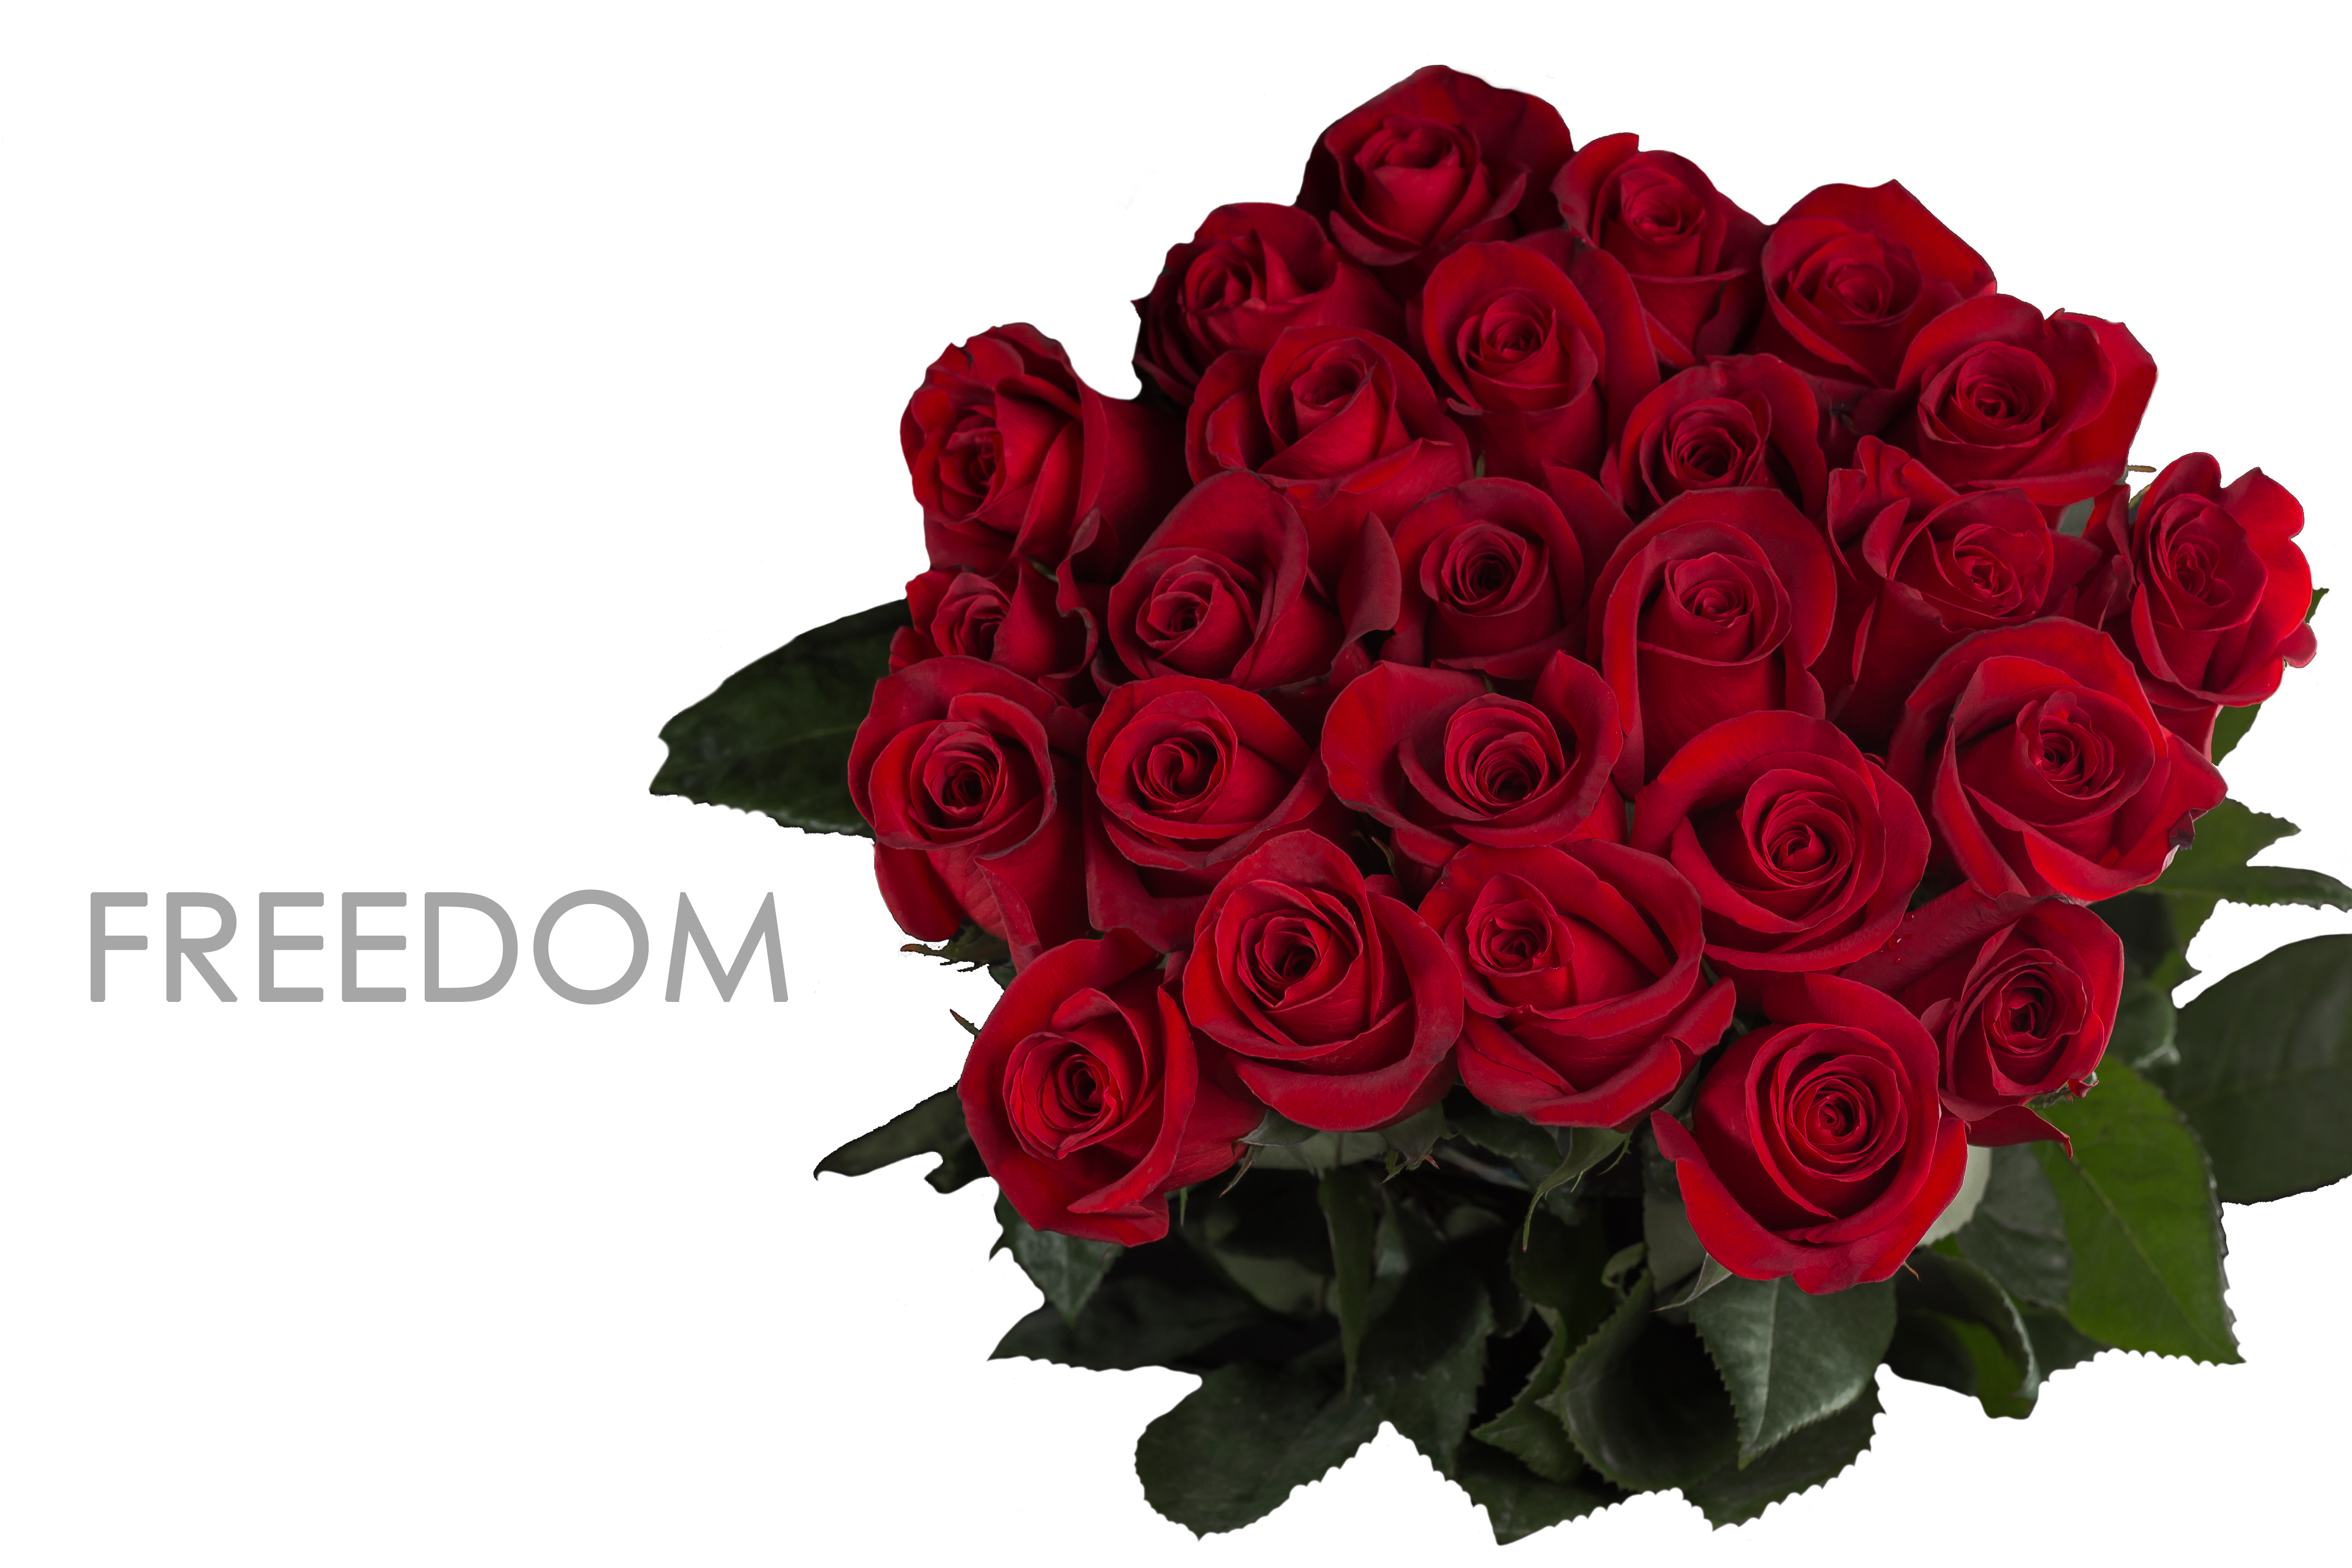 FREEDOM-CAPTION-BOUQUET